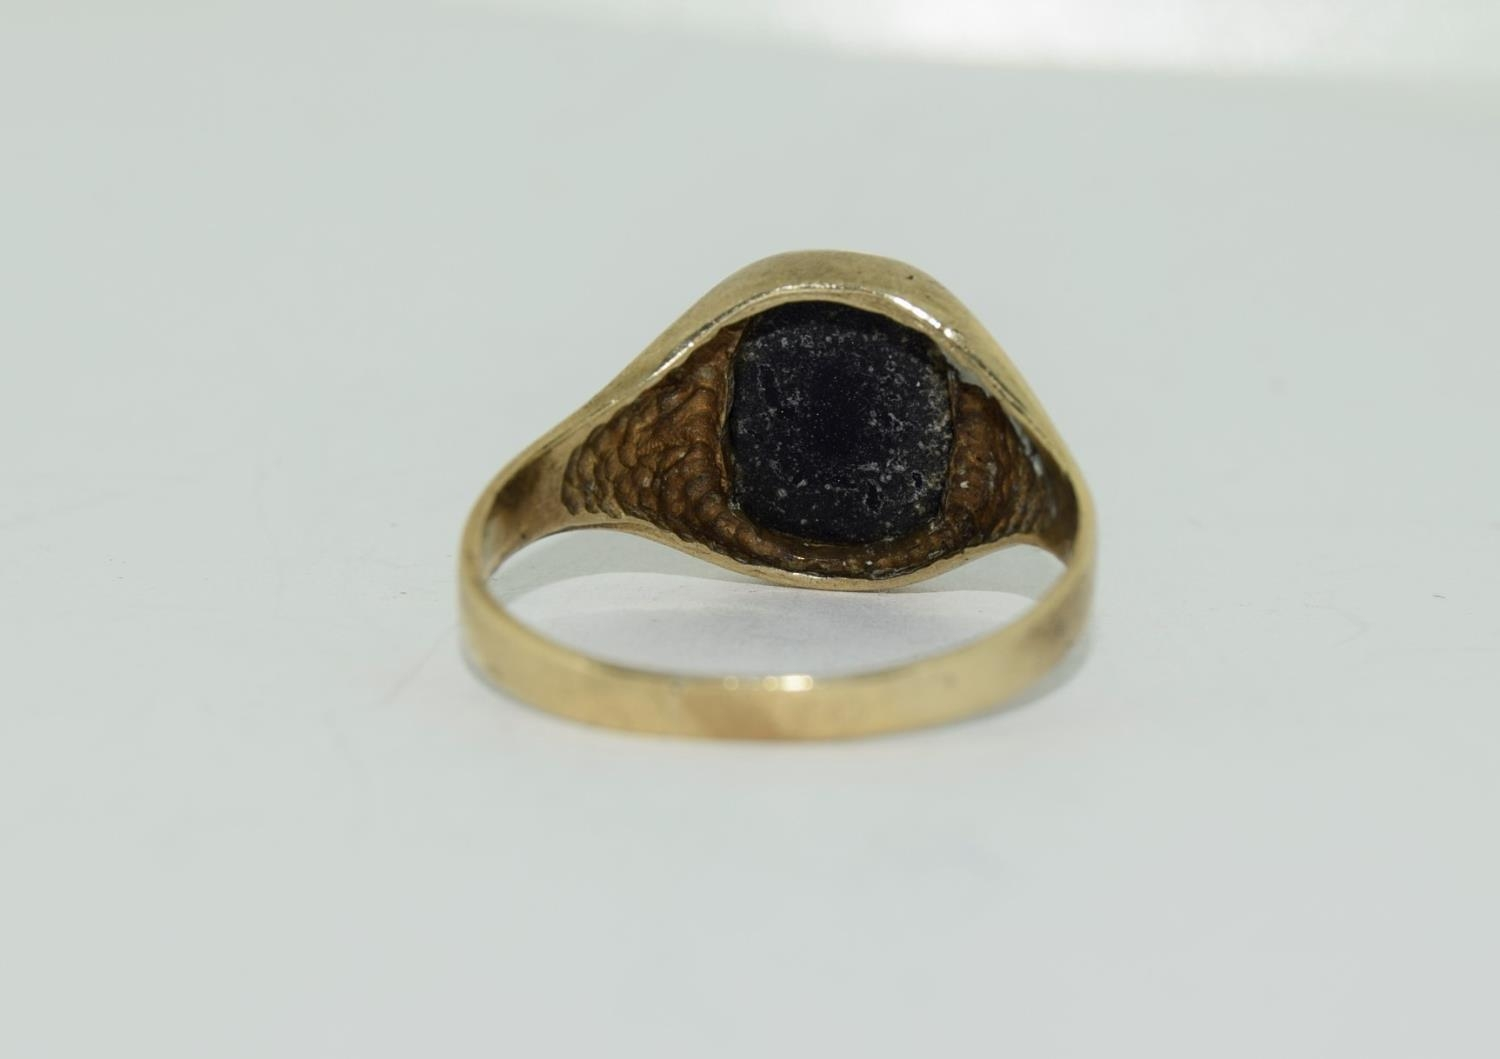 9ct gold gents sygnet ring set with unpolished amethyst centre stone size Q - Image 8 of 12